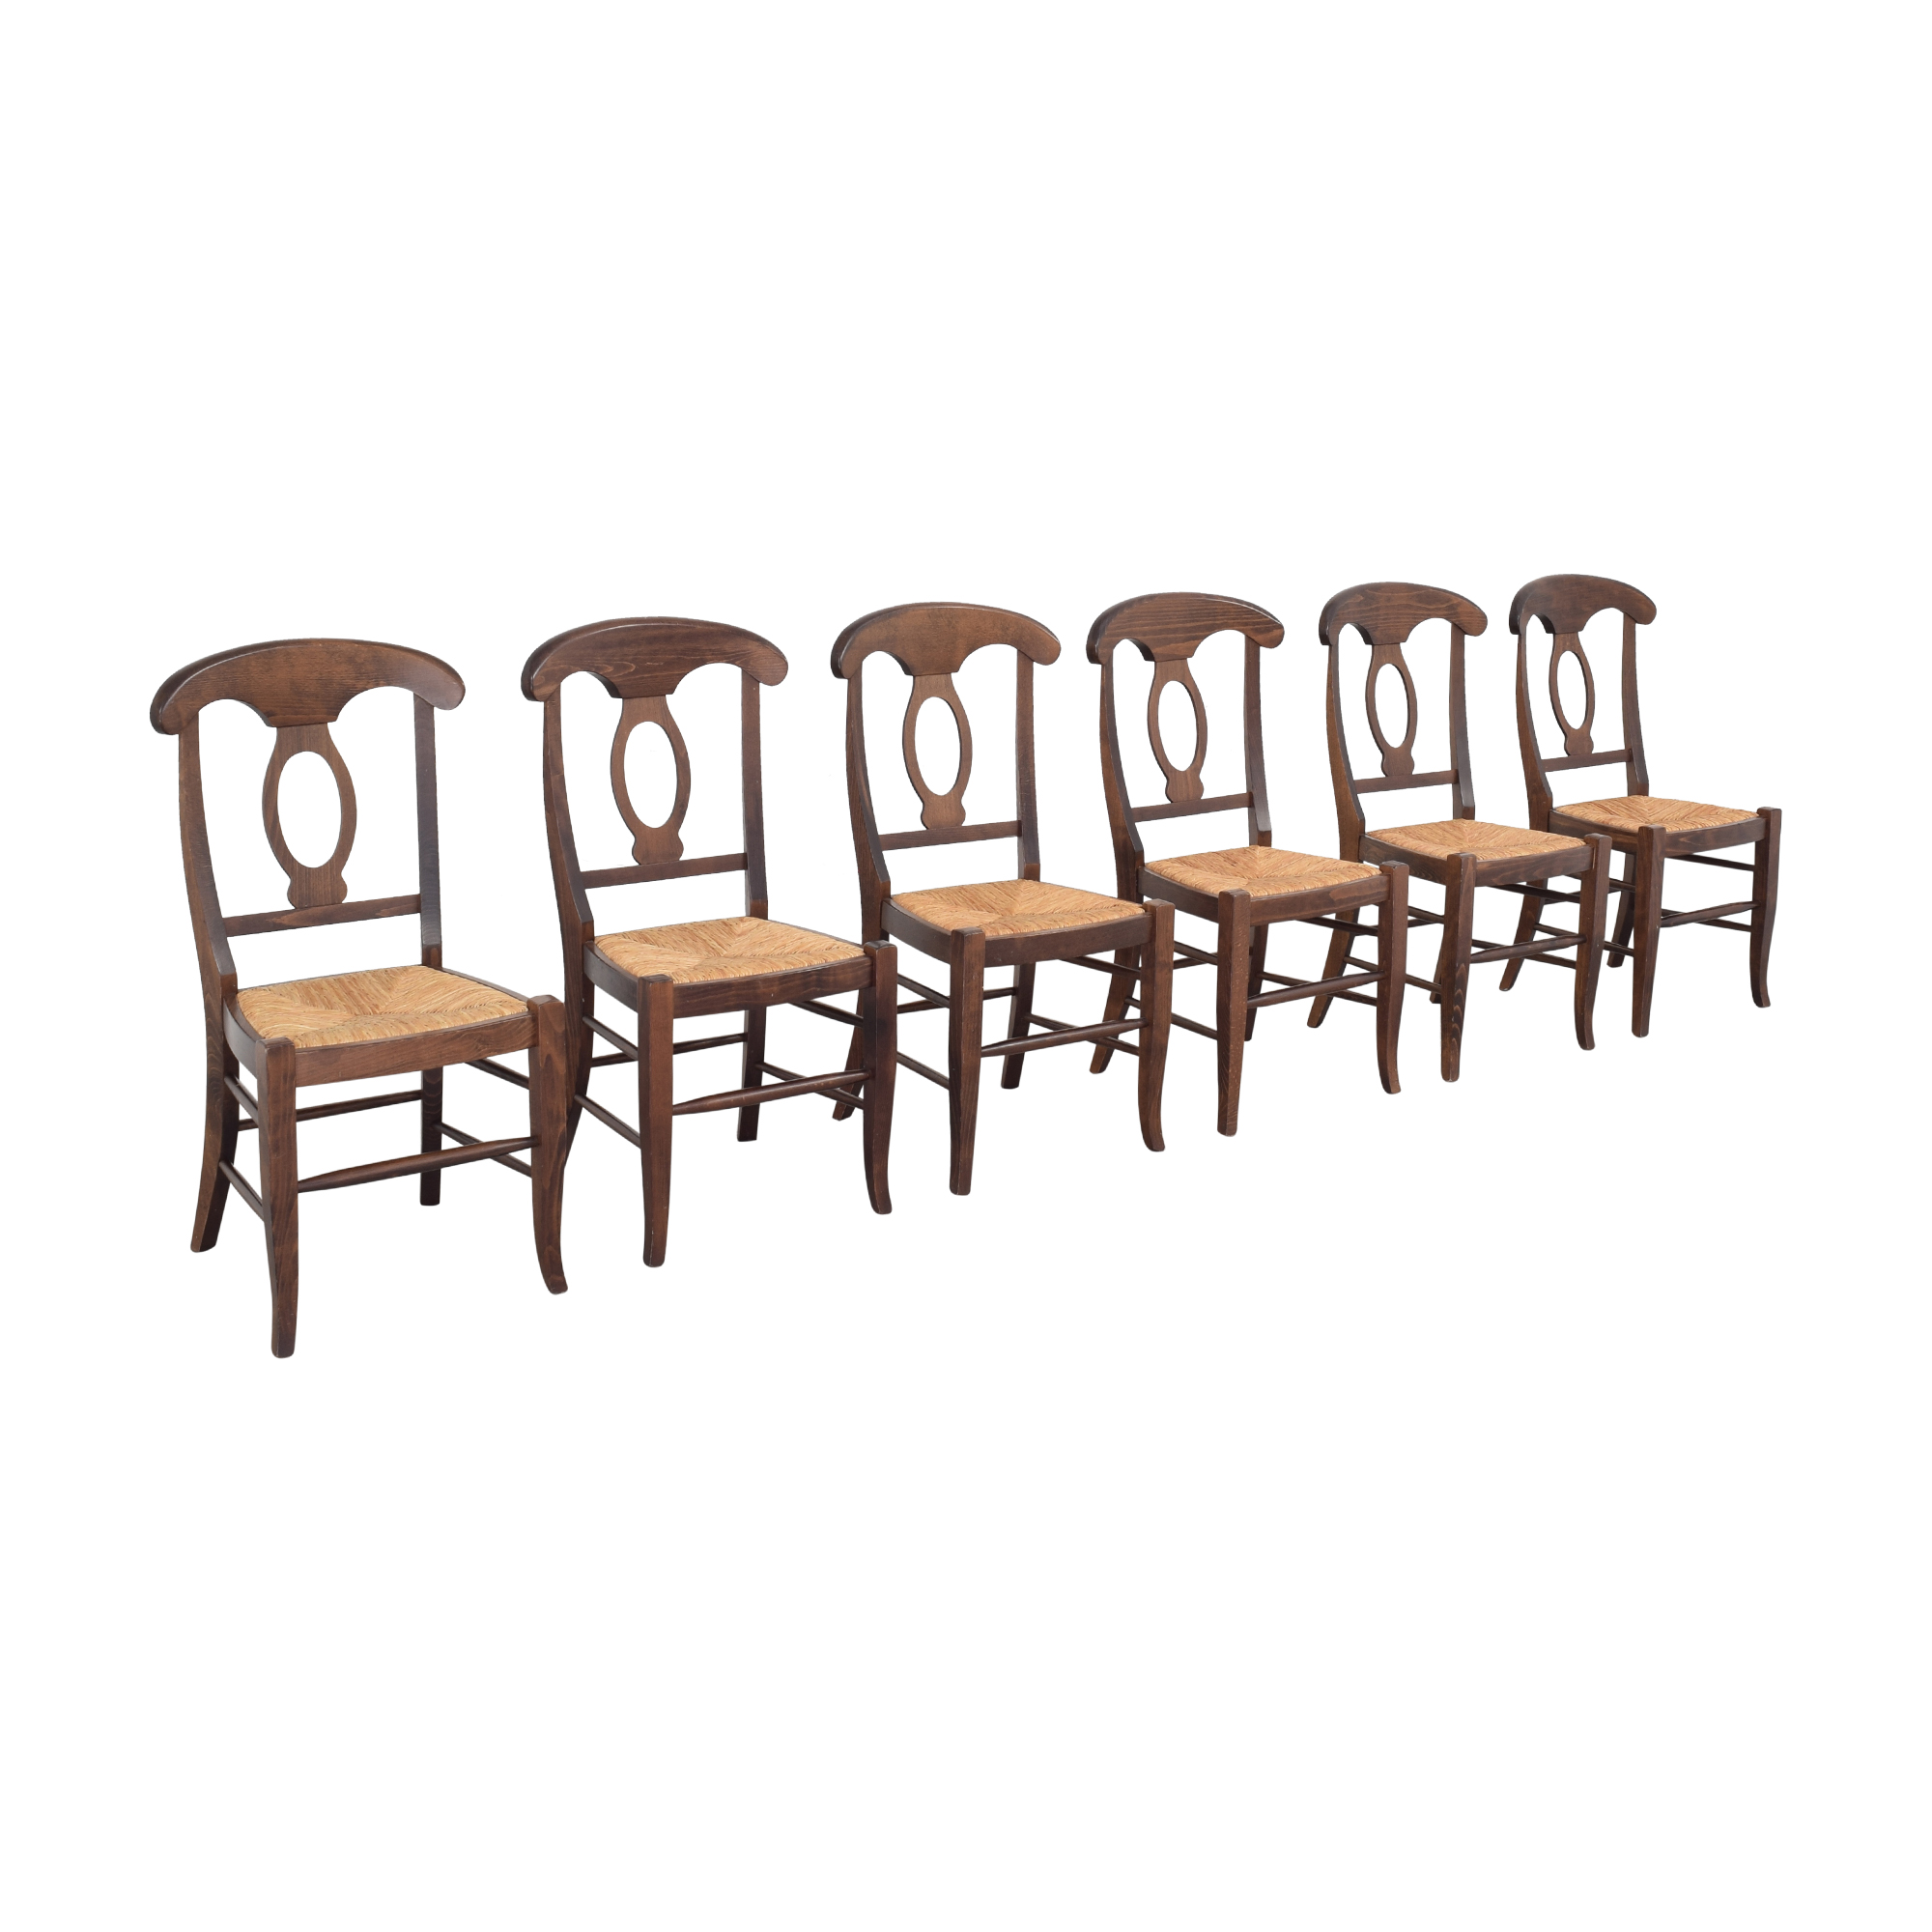 Pottery Barn Pottery Barn Napoleon Dining Side Chairs dimensions